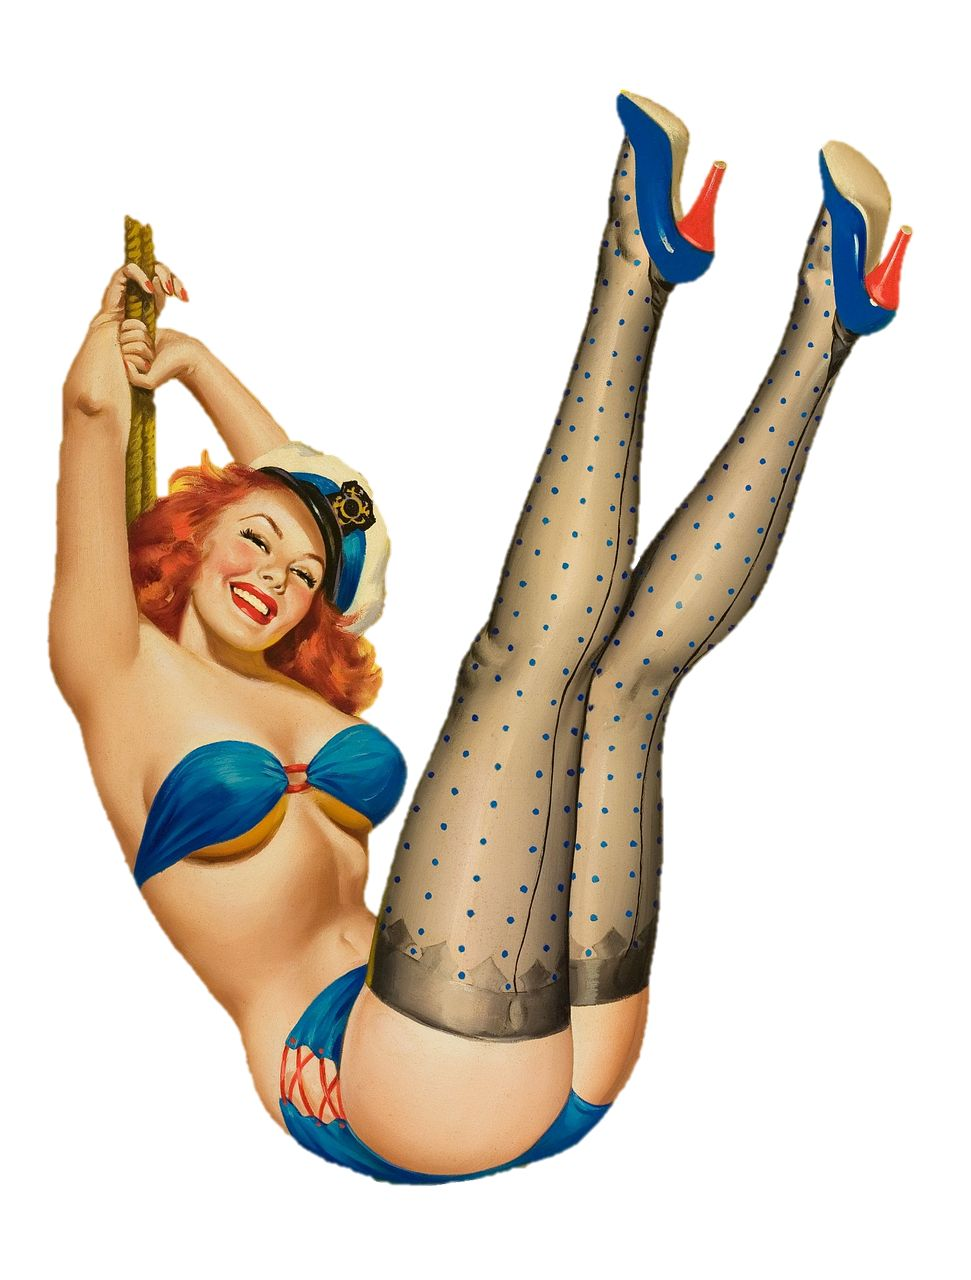 Pin-up subculture